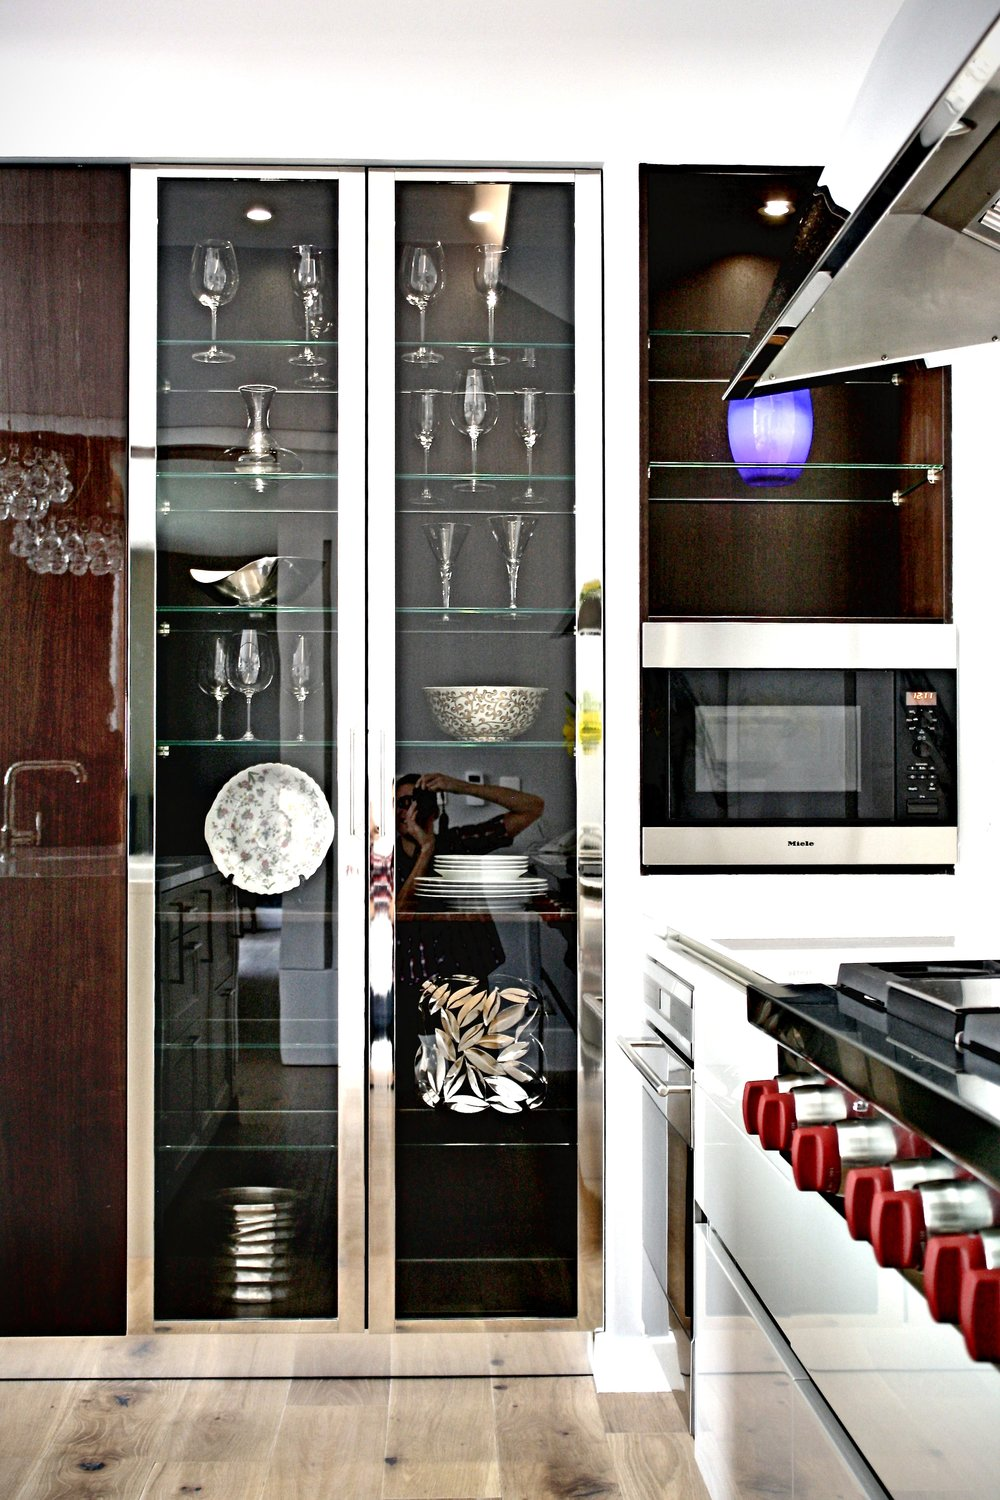 william-adams-design-chapultepec-mexico-city-kitchen-display-cabinet-miele-microwave.jpg